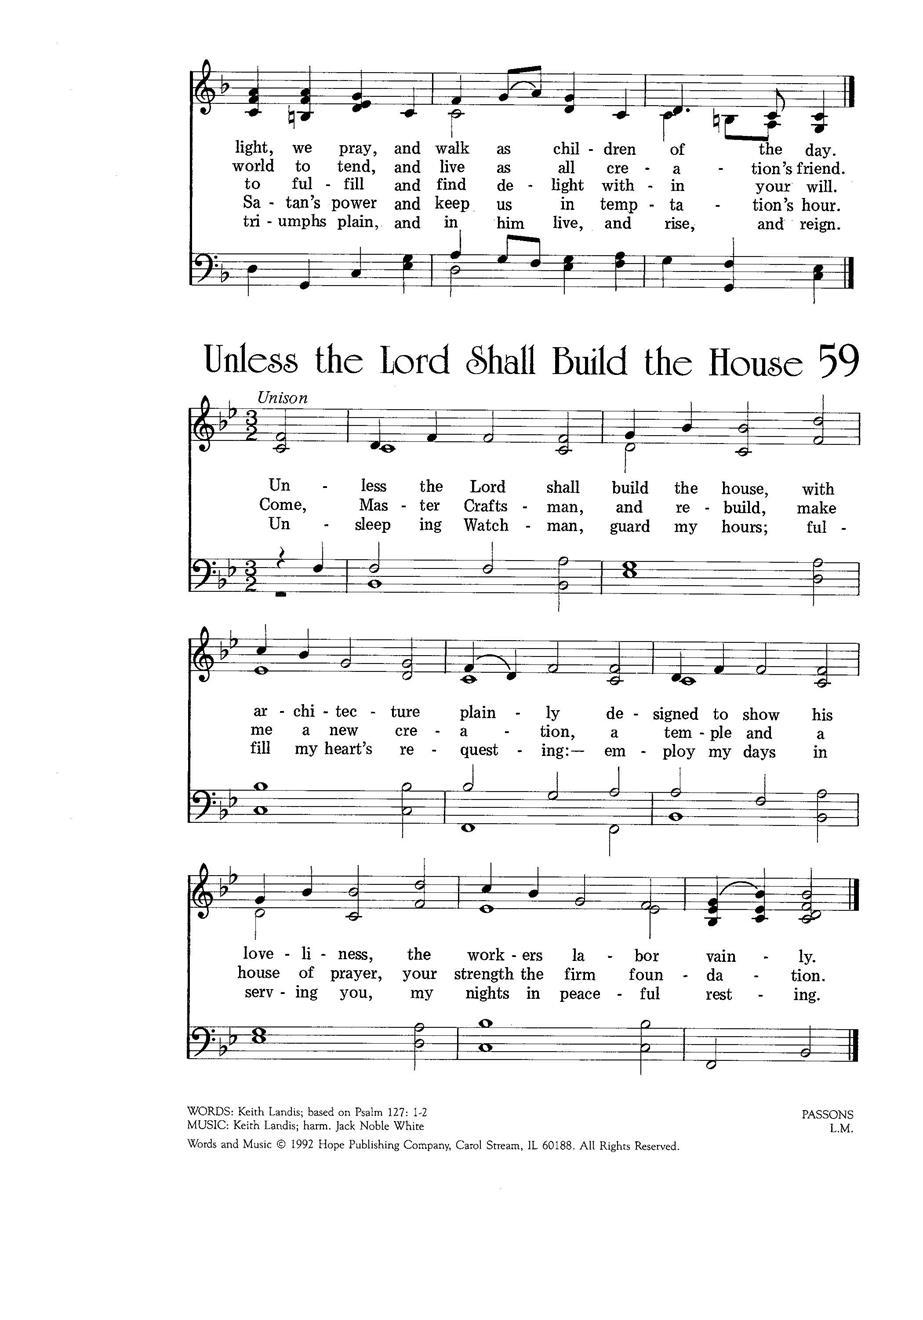 Unless the Lord Shall Build the House Cover Image